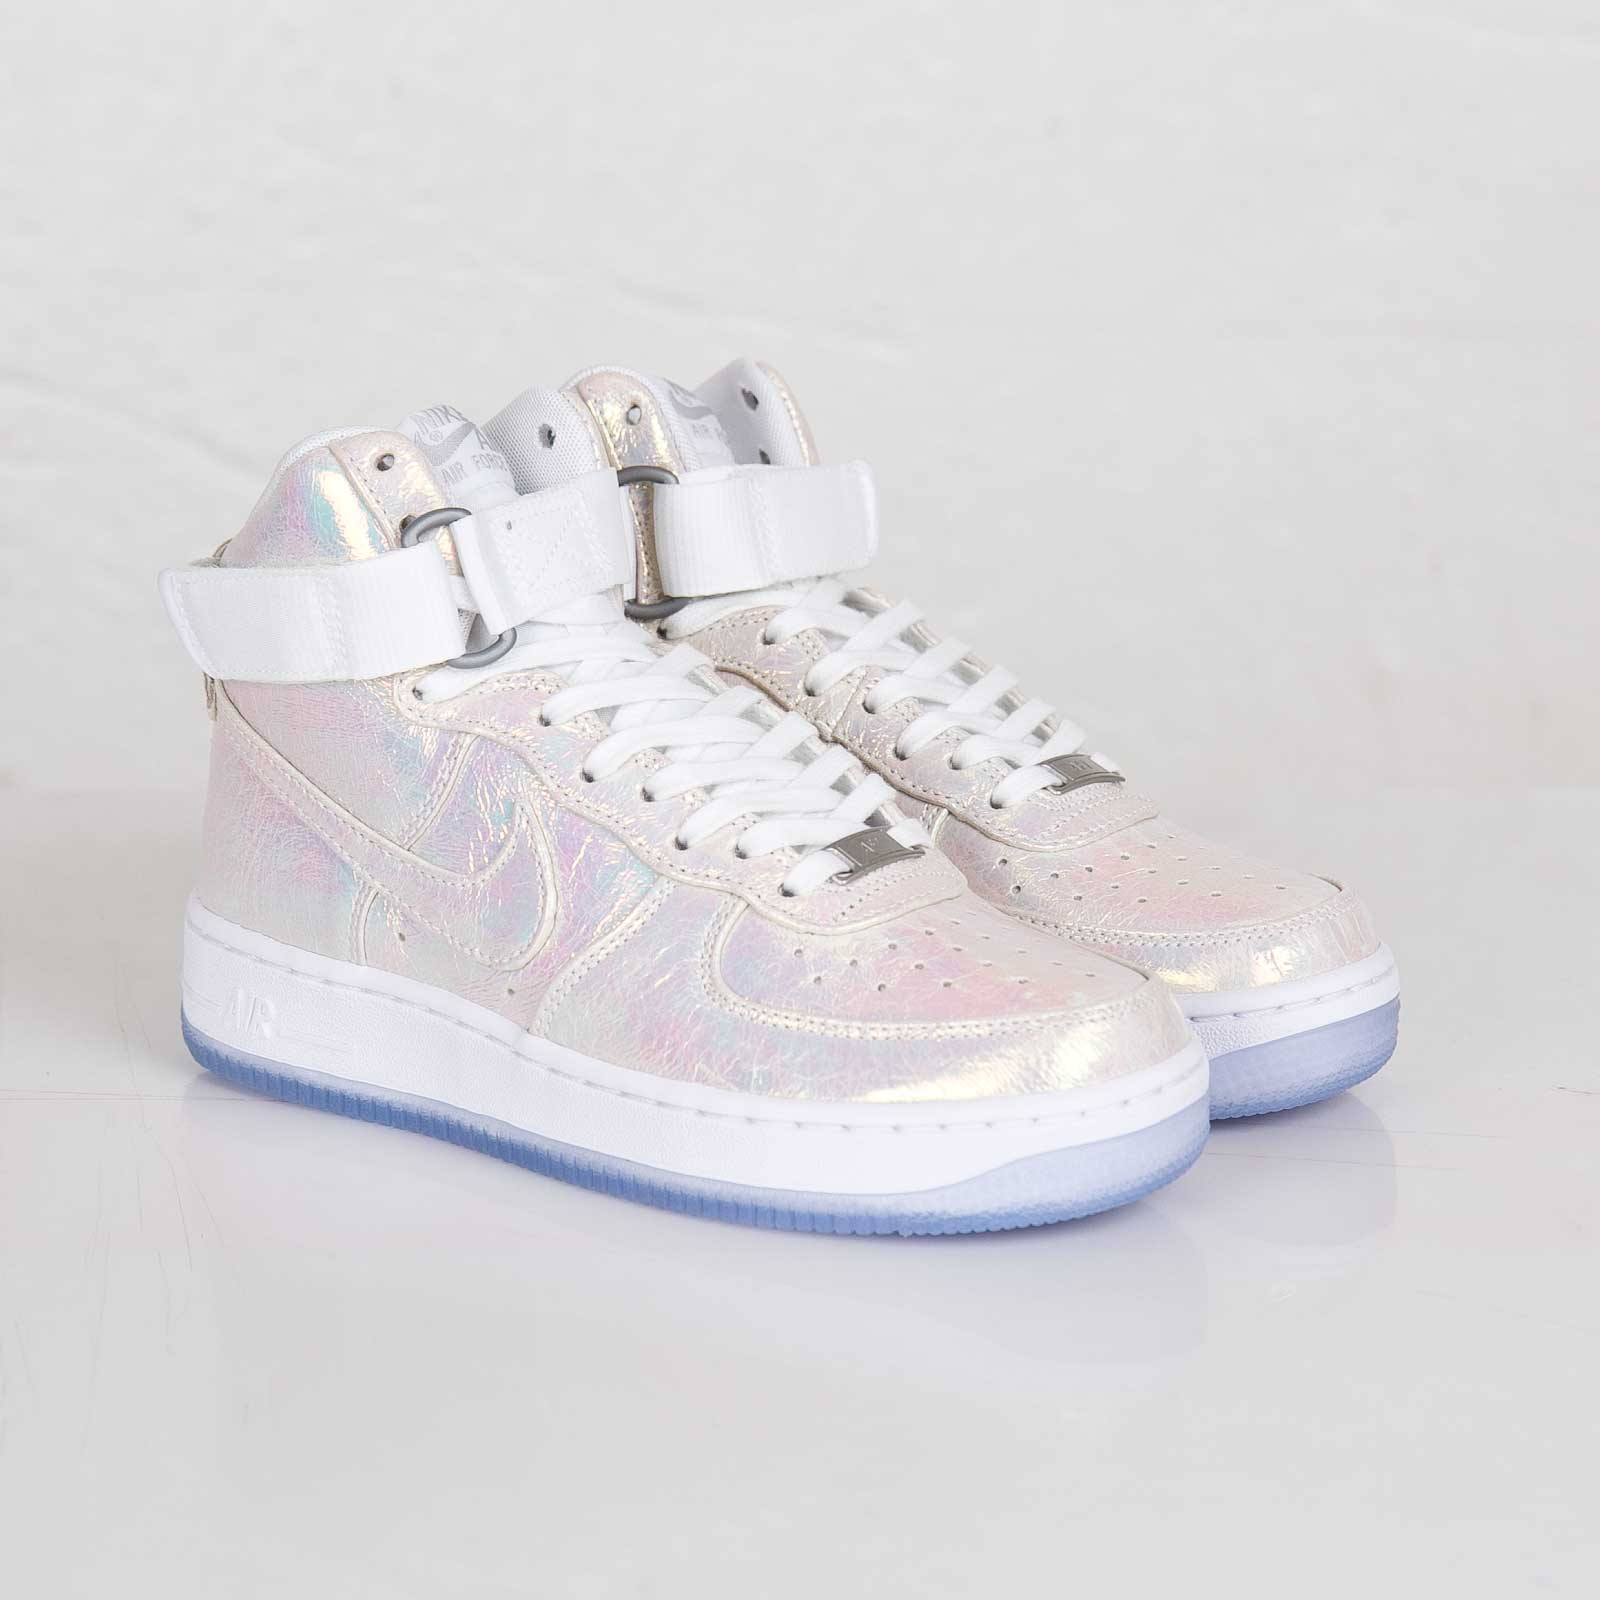 nike air force 1 limited edition pearl collection 53% OFF!